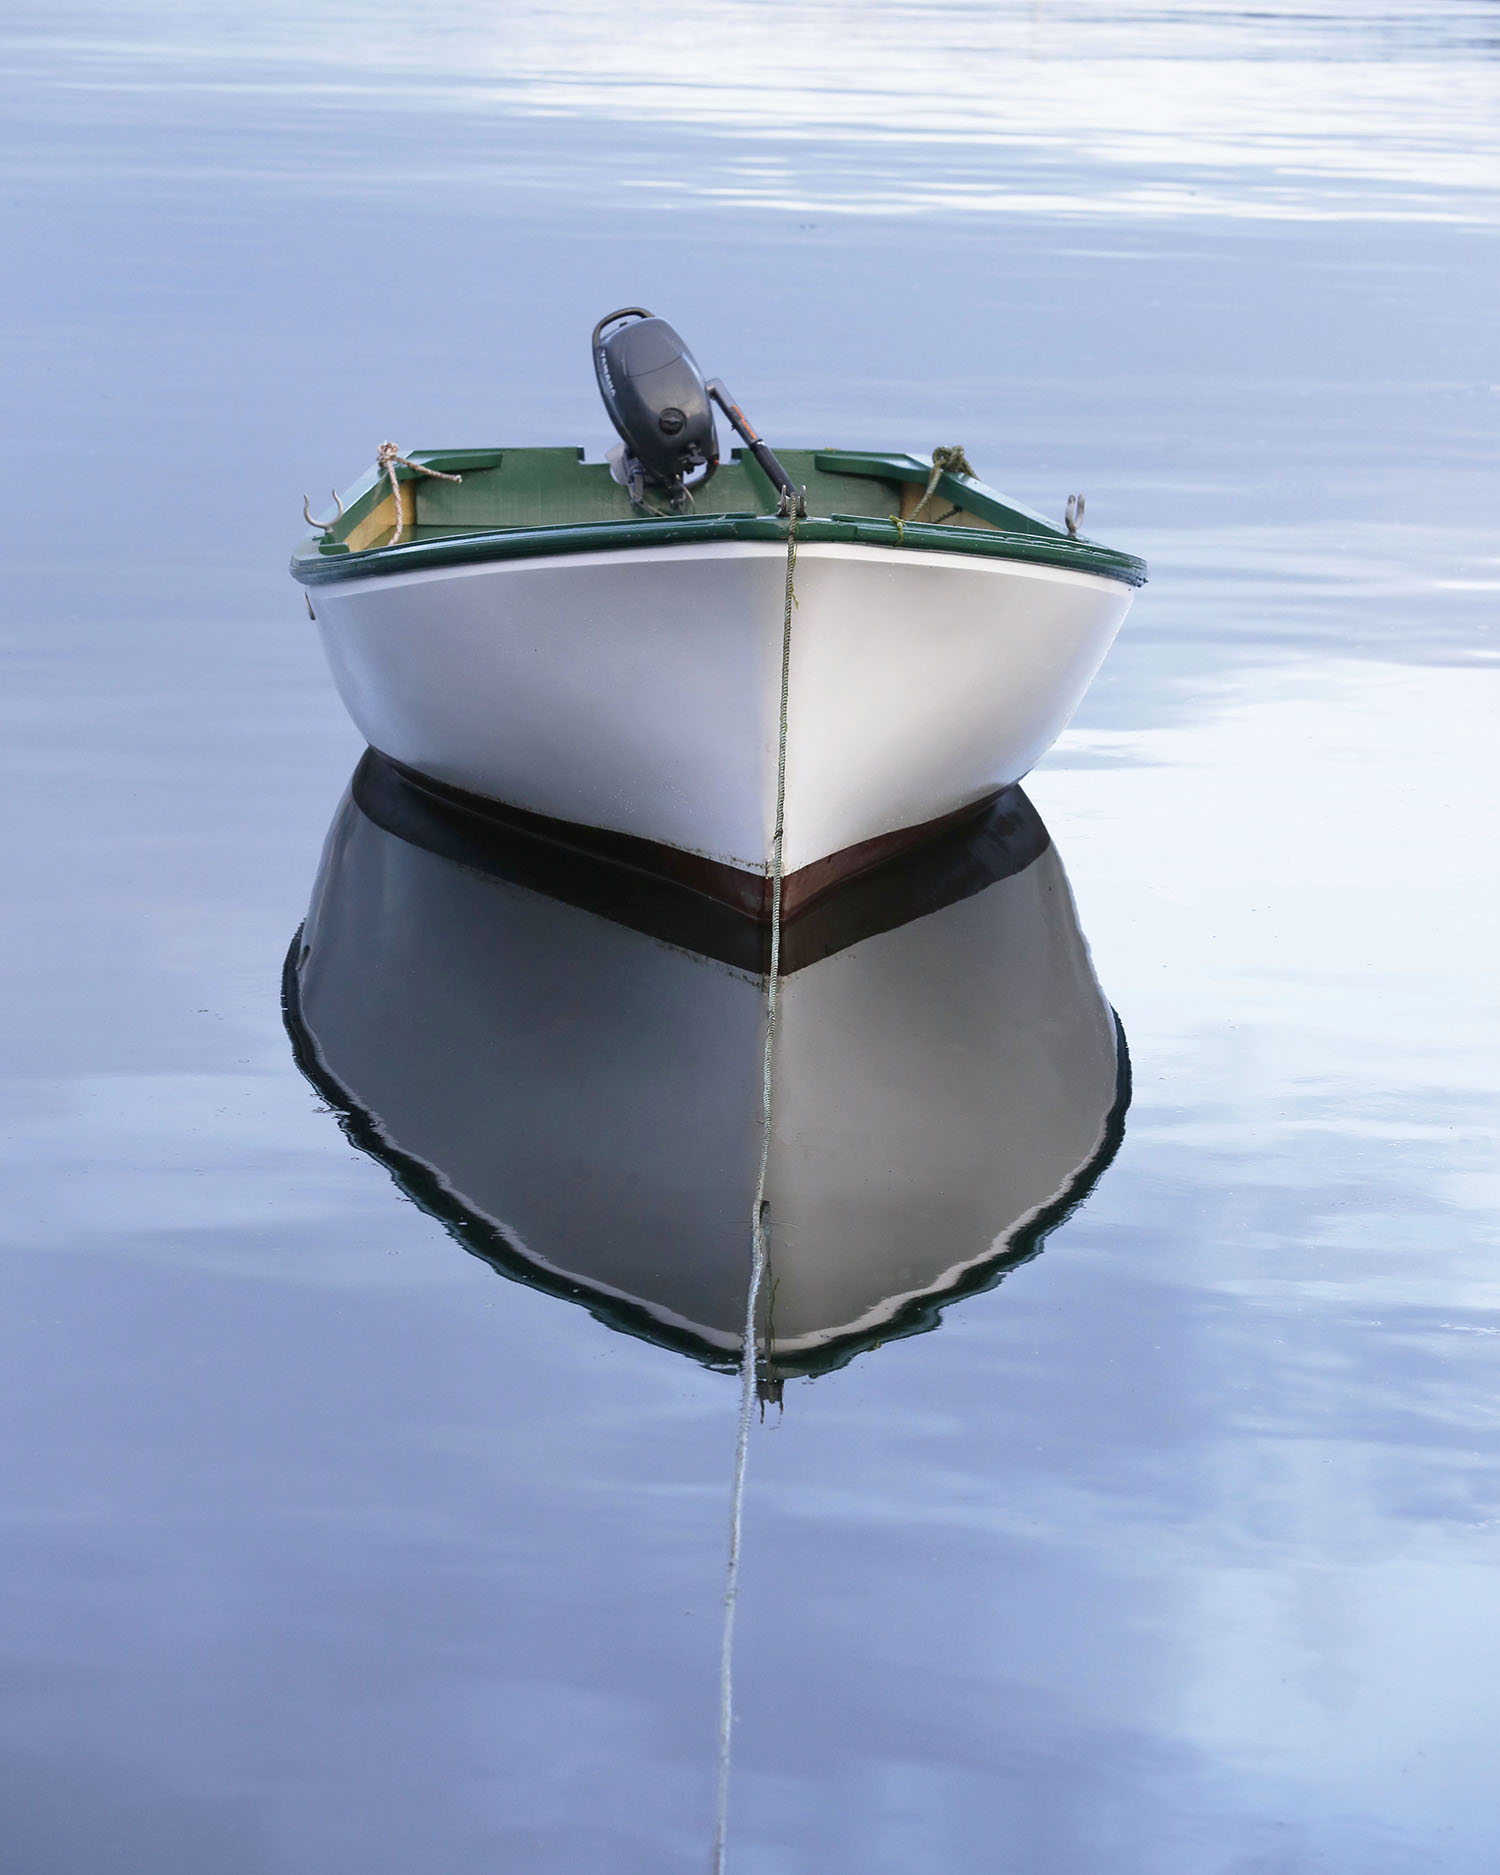 The Floating Boat